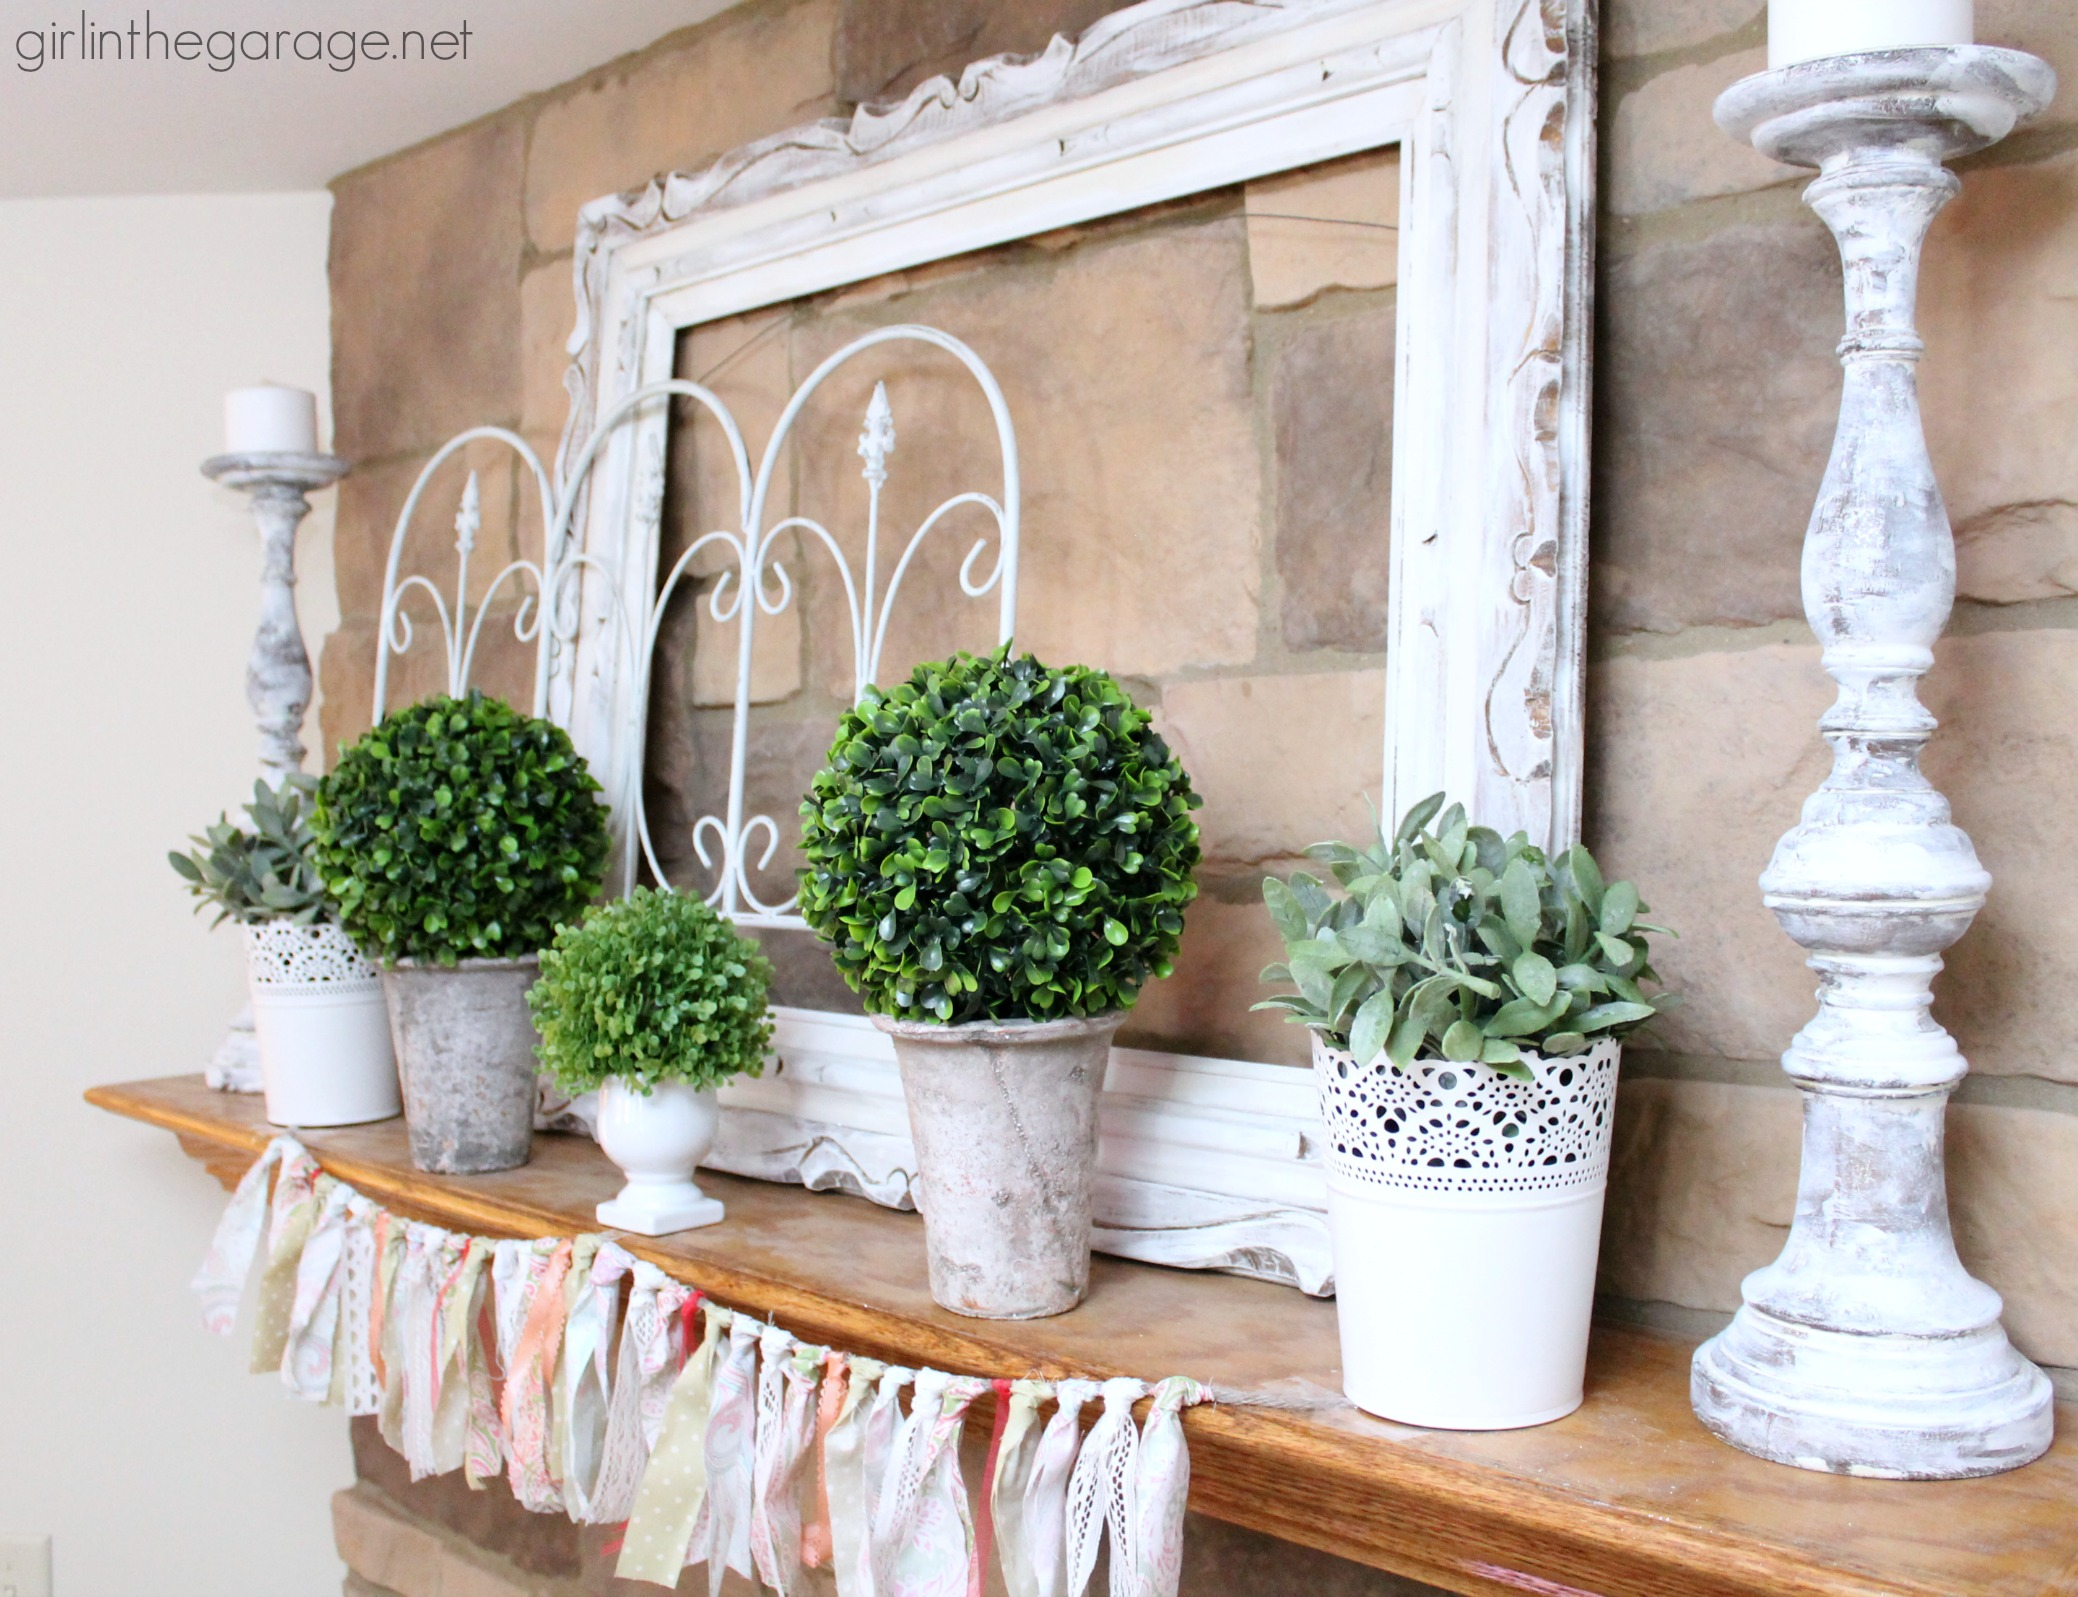 White And Green Spring Mantel Girl In The Garage 174